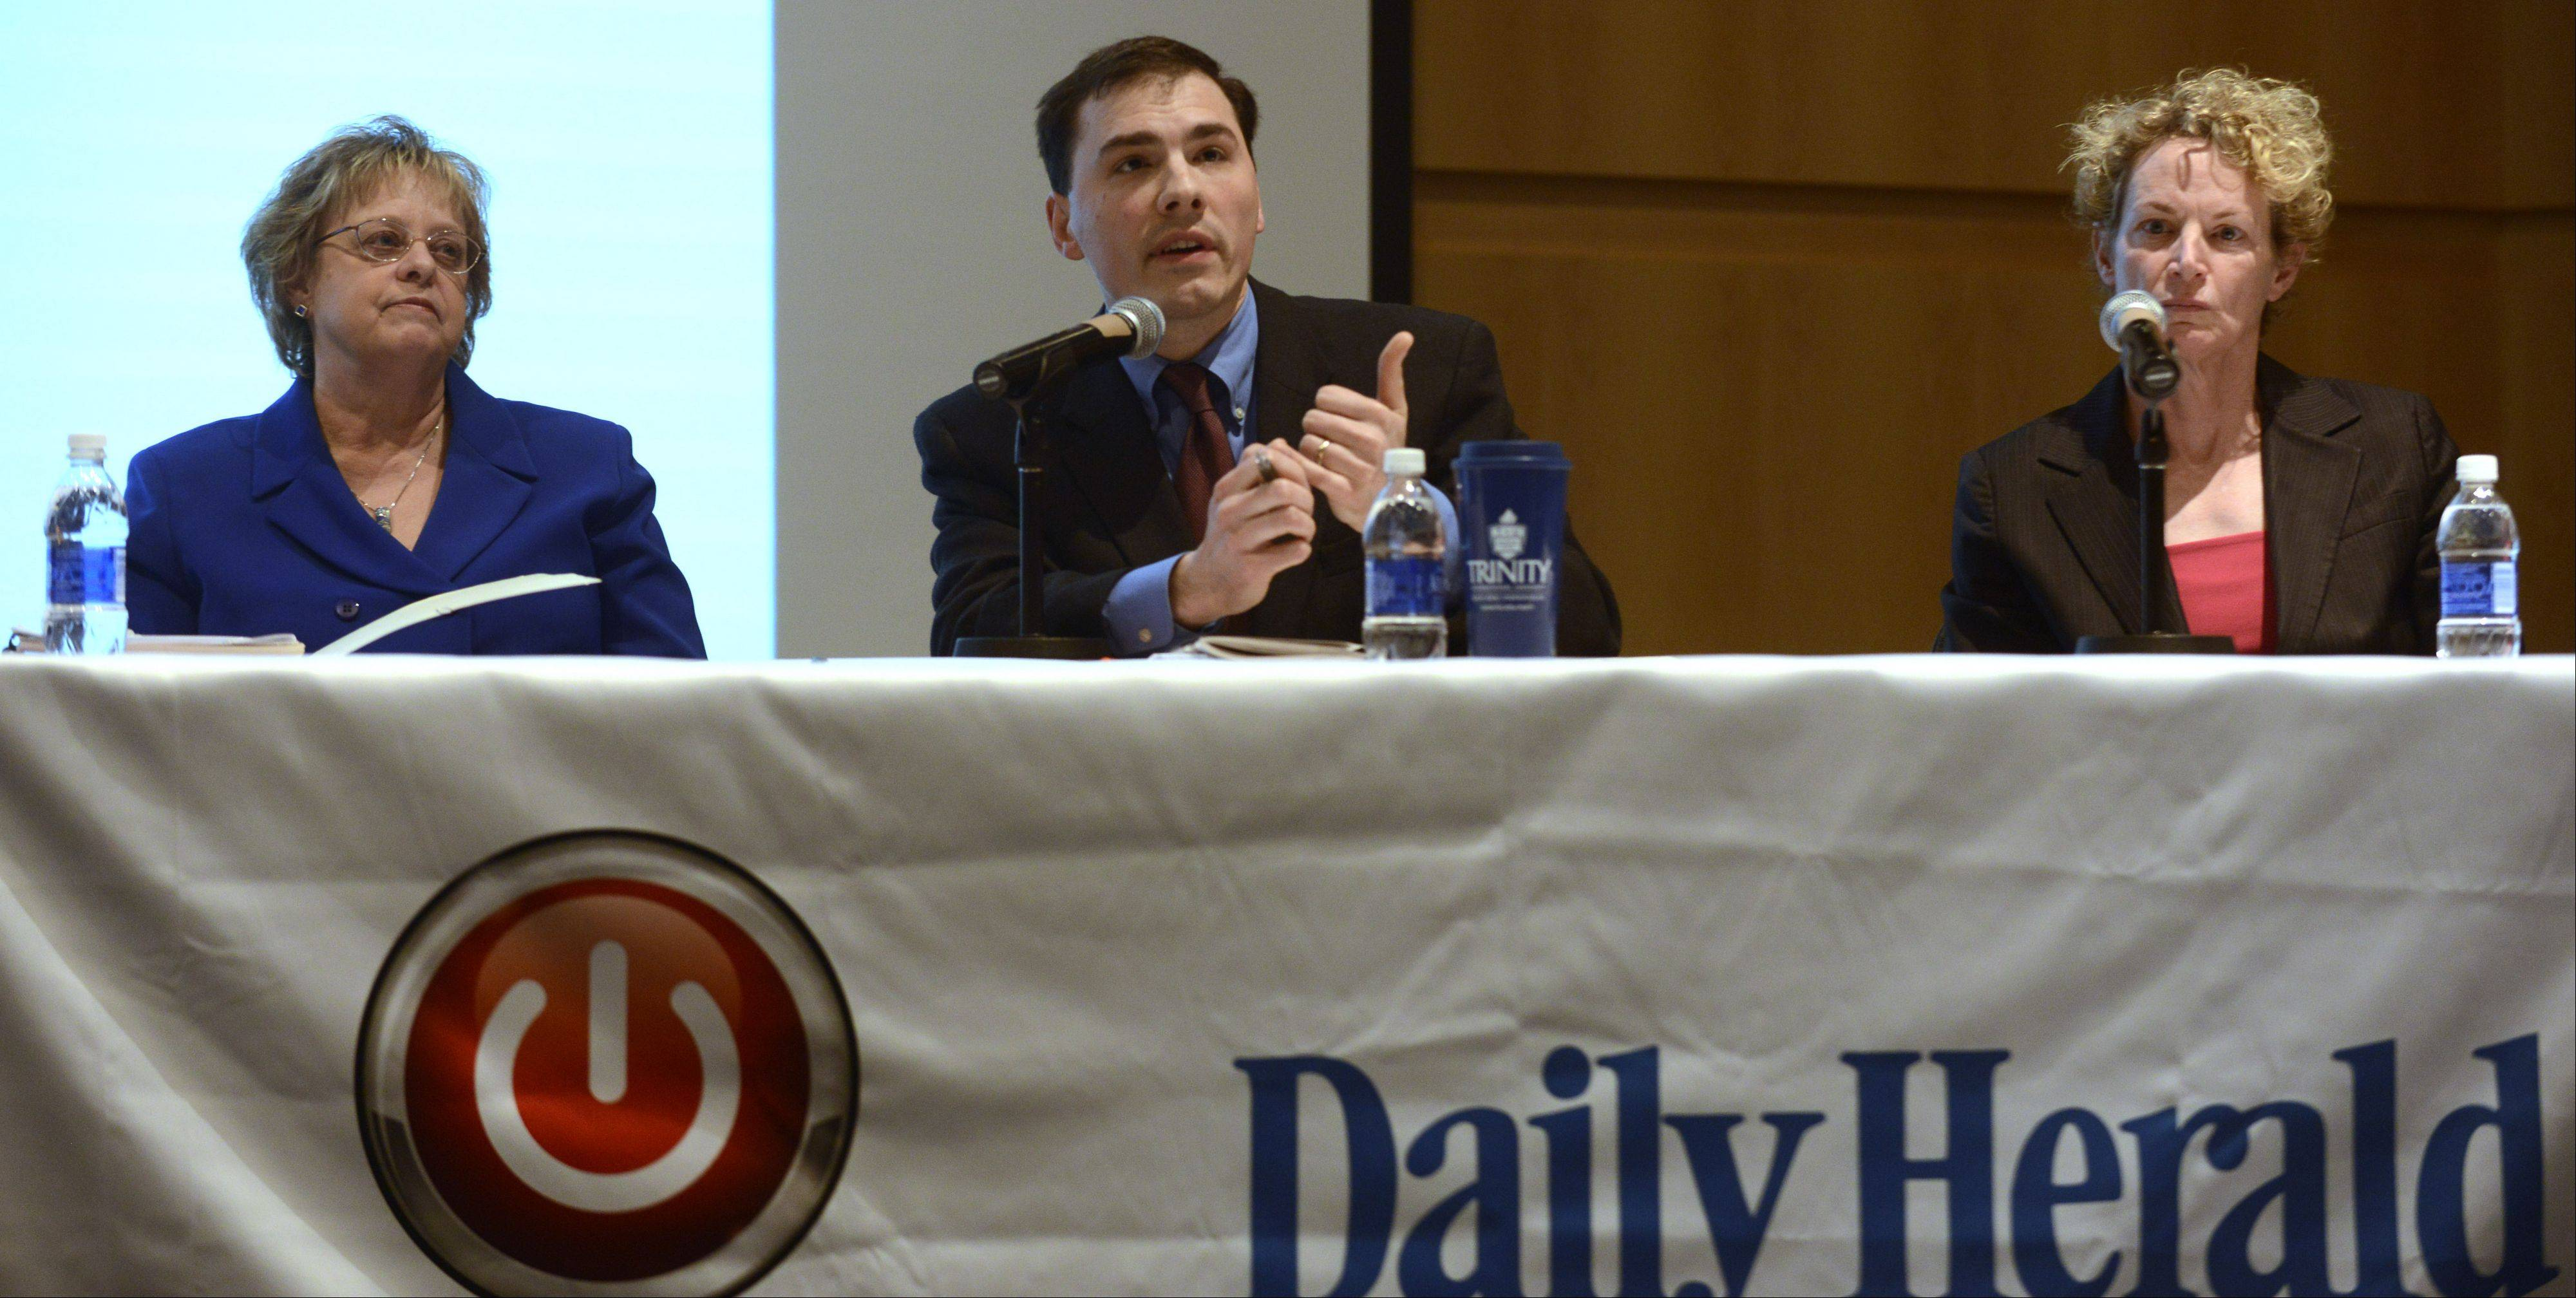 JOE LEWNARD/jlewnard@dailyherald.com Left to right, Cinda Klickna, Illinois Education Association president, and state representatives Tom Morrison and Elaine Nekritz participate in a pension reform forum sponsored by the Daily Herald and Reboot Illinois, held at Harper College in Palatine Wednesday.